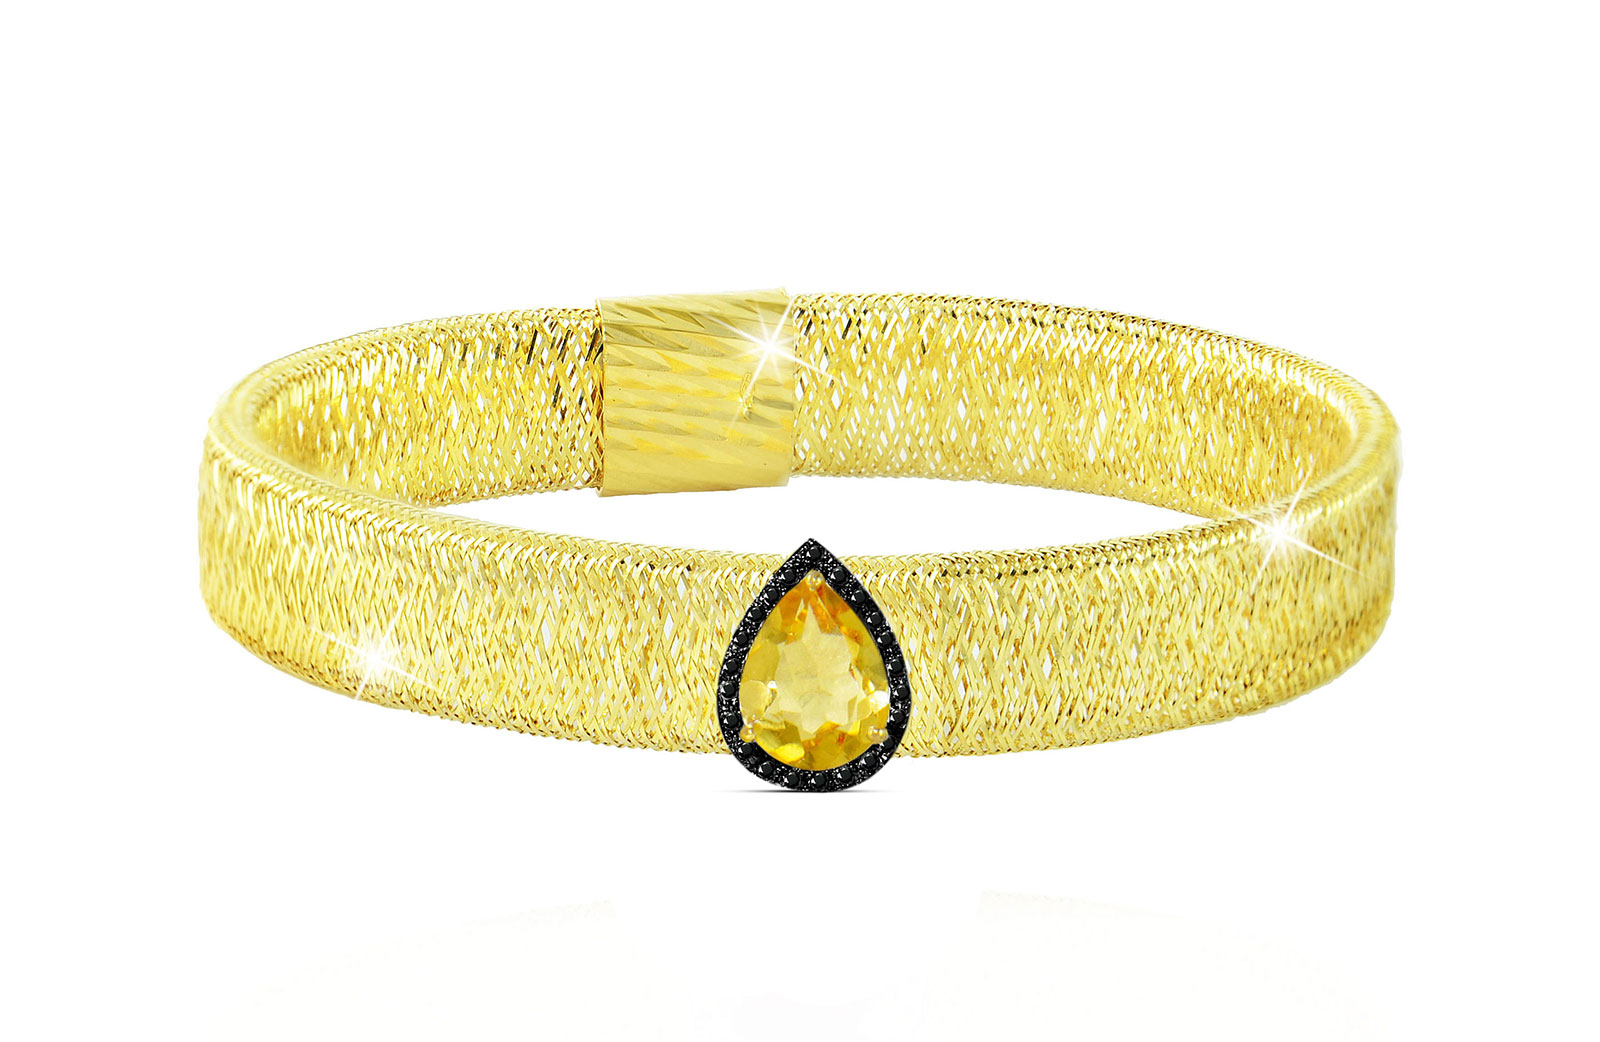 Vera Perla 18K Gold 0.12ct Black Diamonds, Citrine Mesh Bracelet